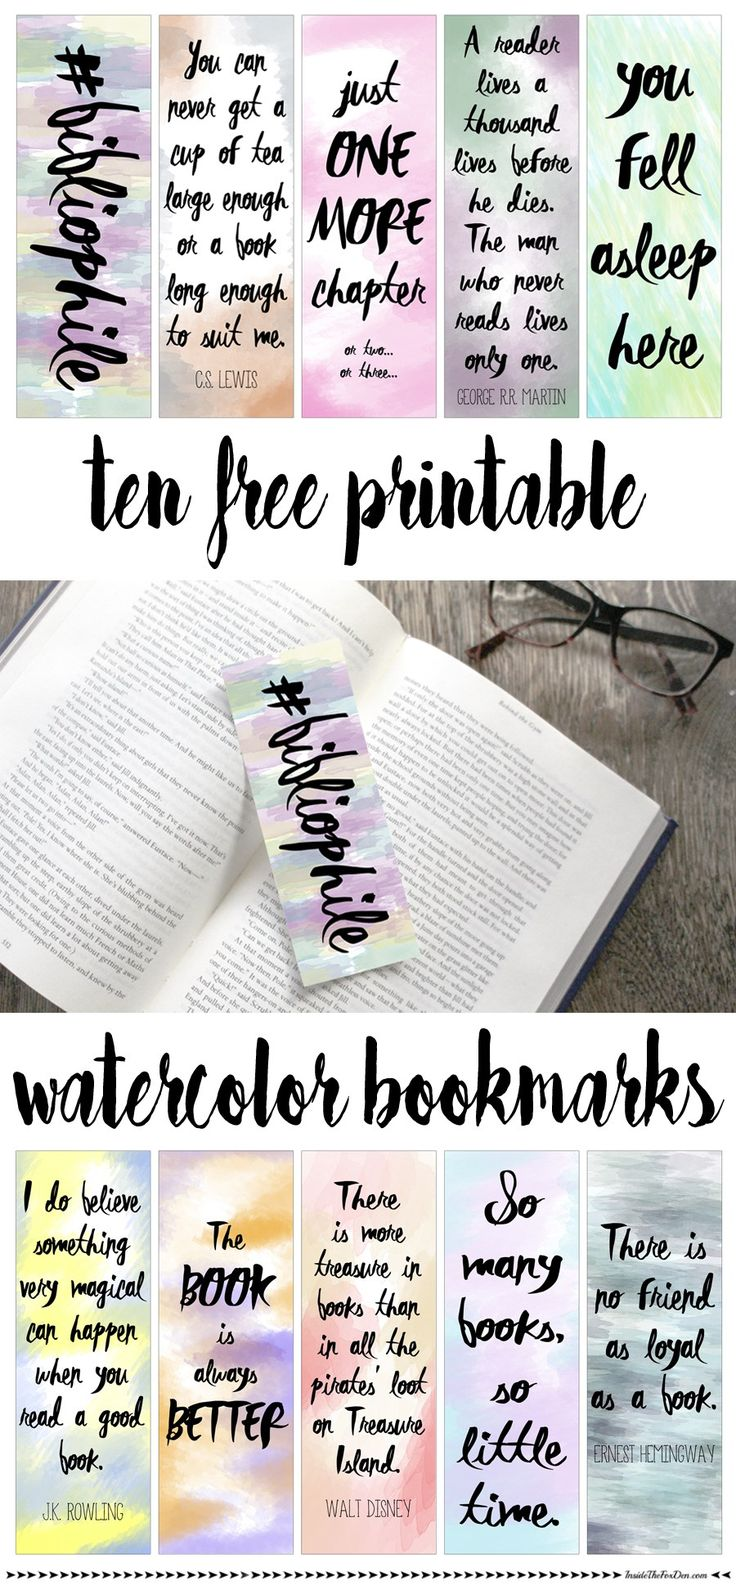 Free printable watercolor bookmarks